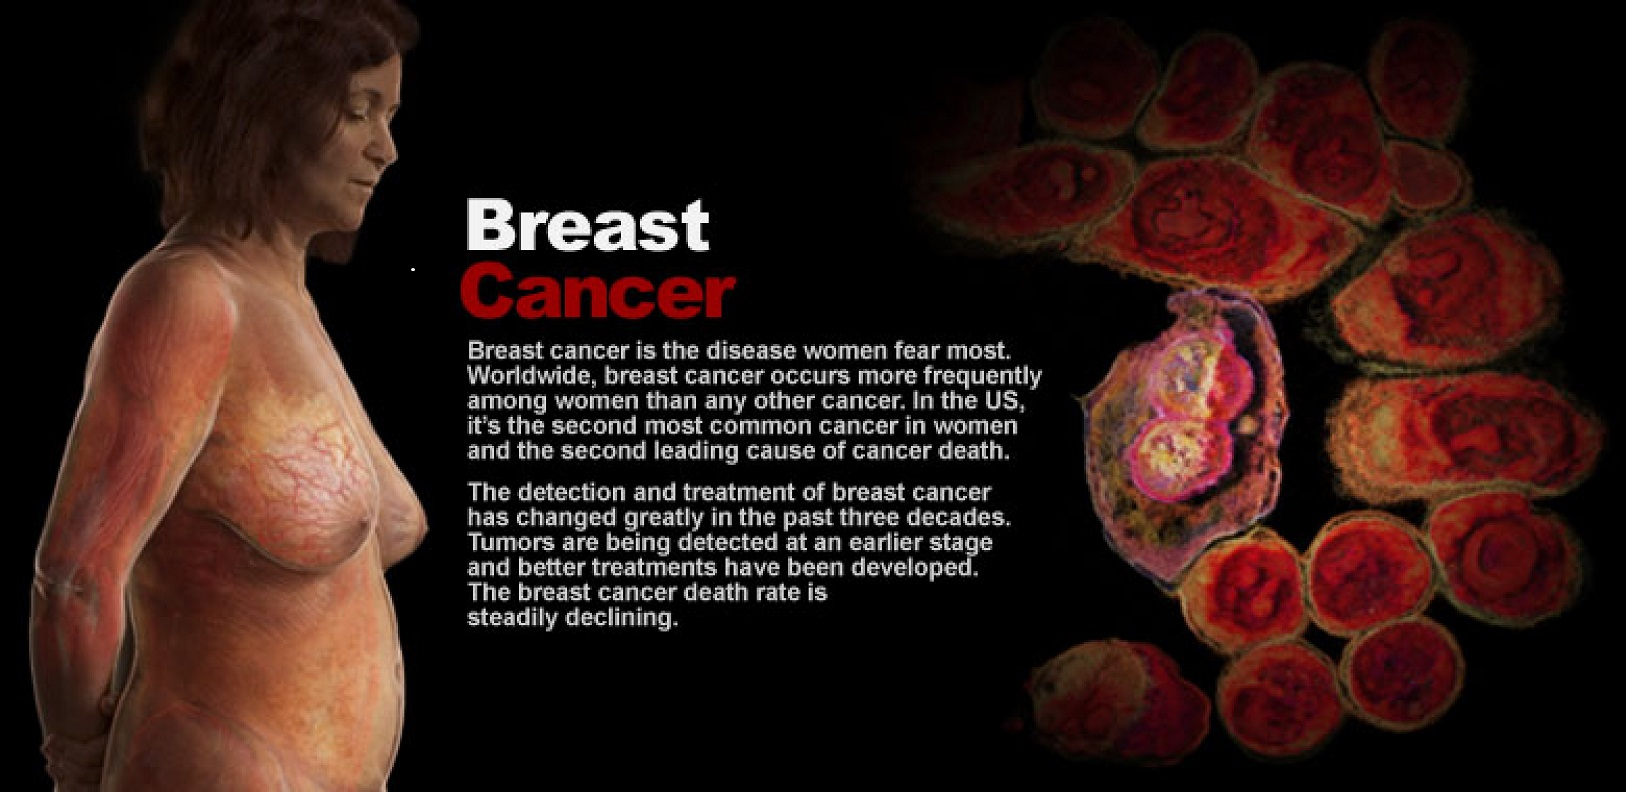 Web In-Depth: Breast Cancer